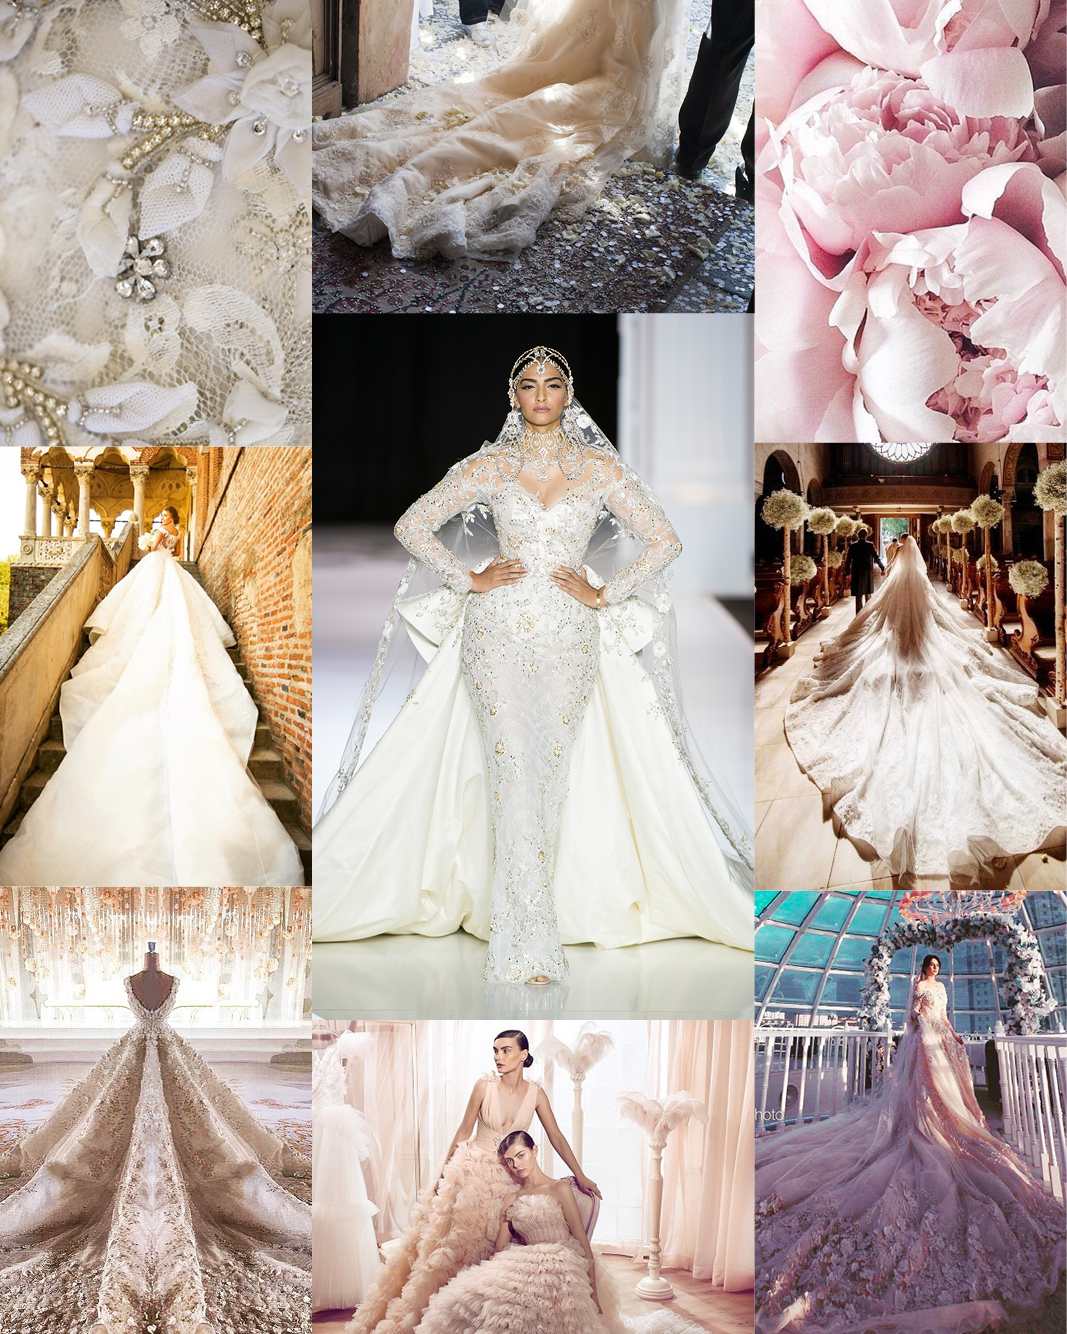 7 Wedding Trends That Will Be Huge for 2018 - Savoir Flair